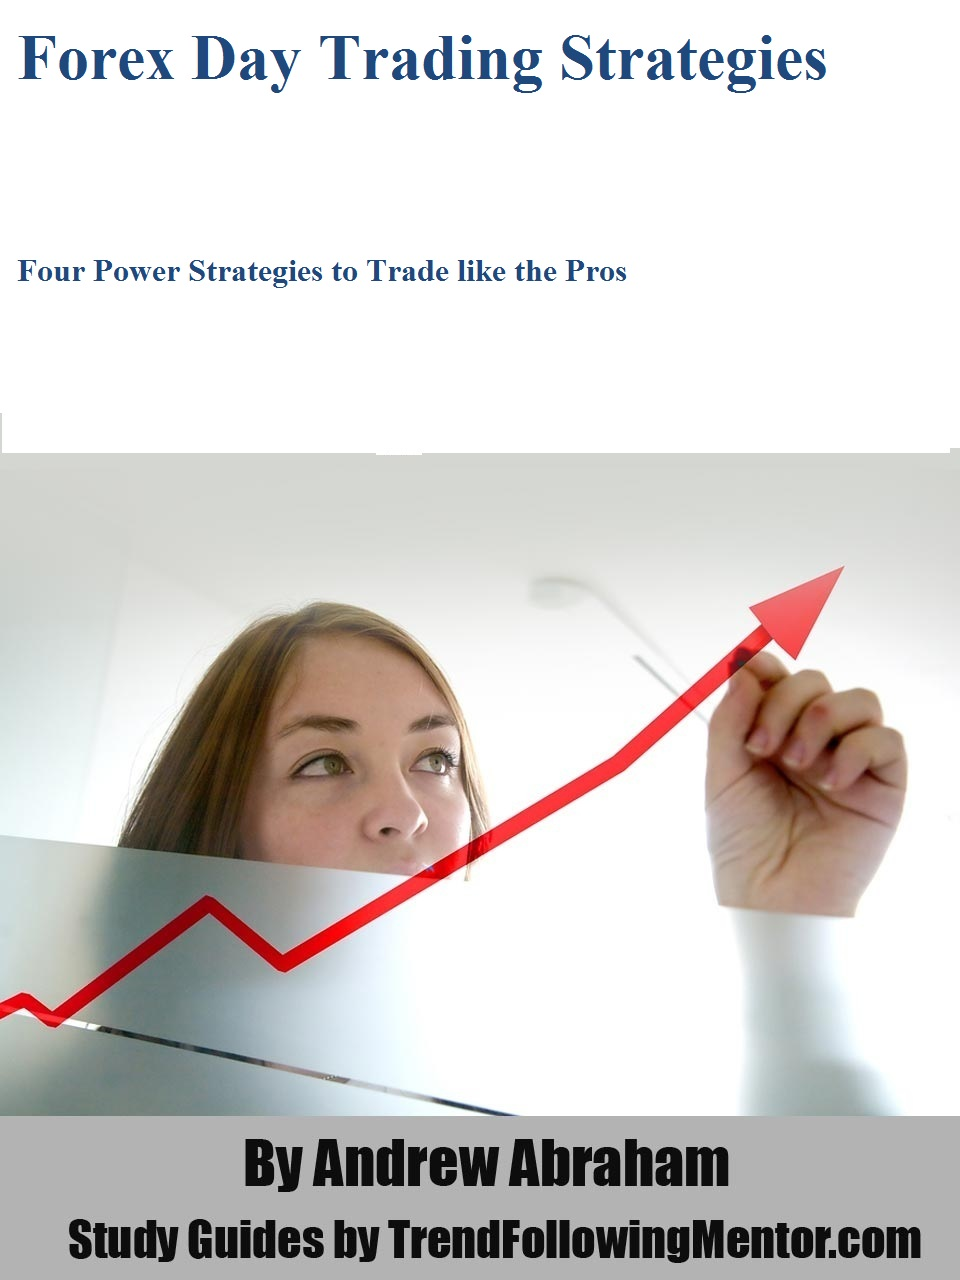 Forex Day Trading Strategies Four Power Strategies to Trade like the Pros